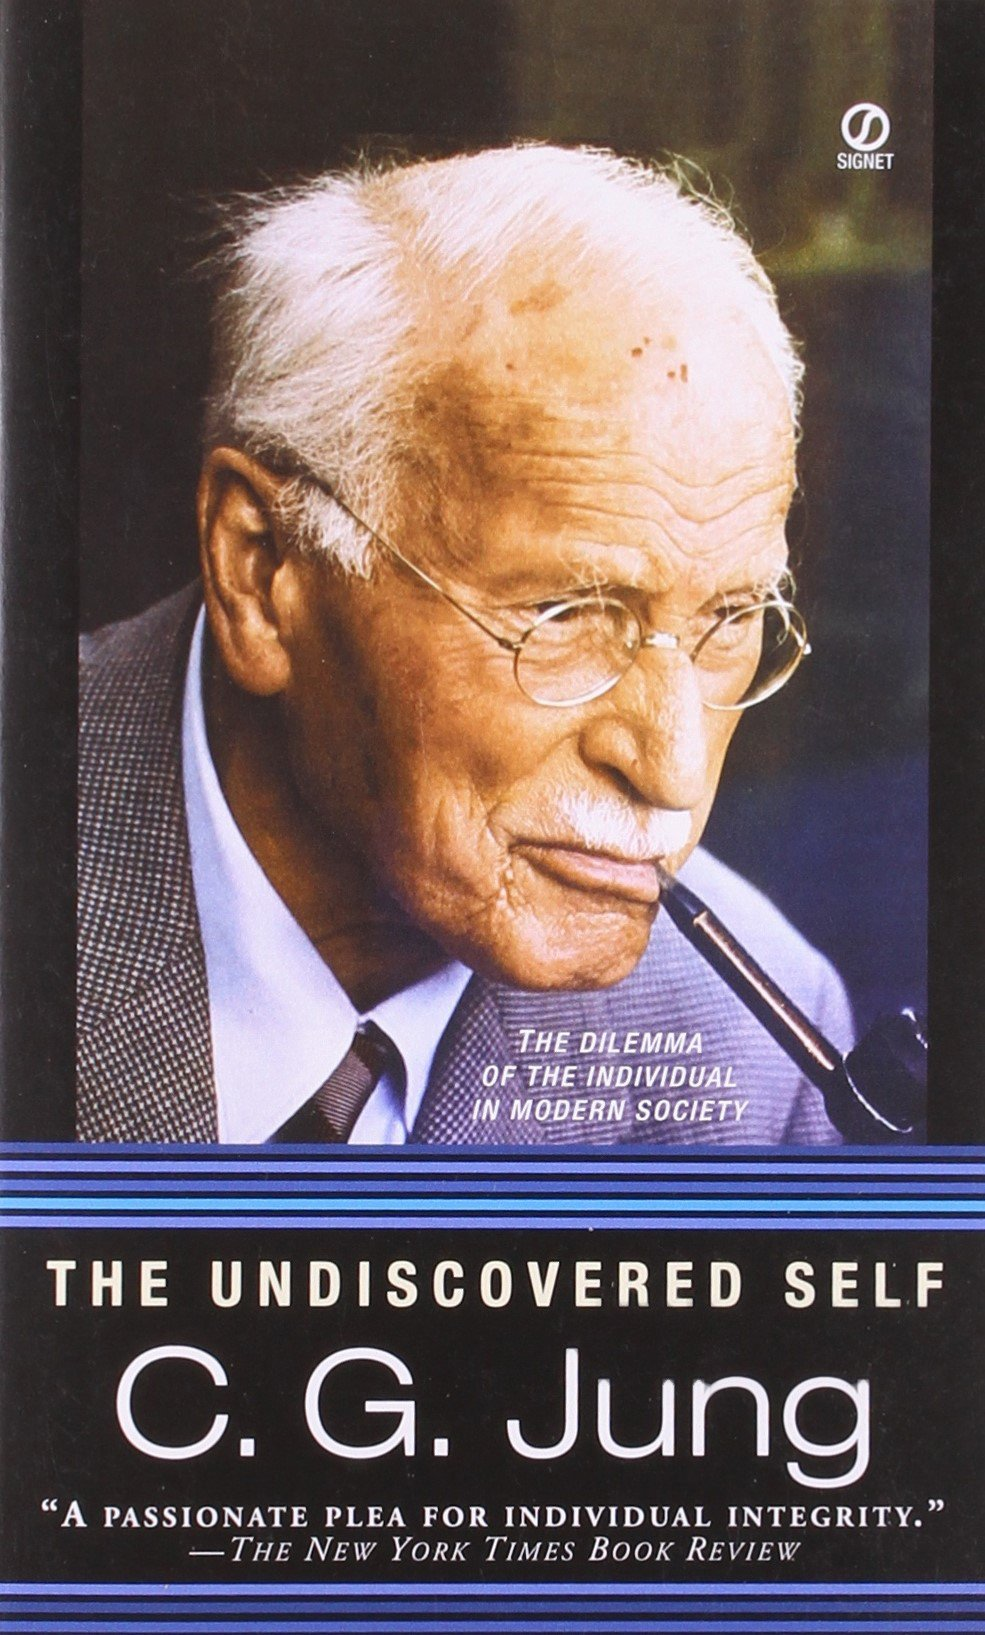 The undiscovered self. A passionate plea for individual integrity. C. G. Jung